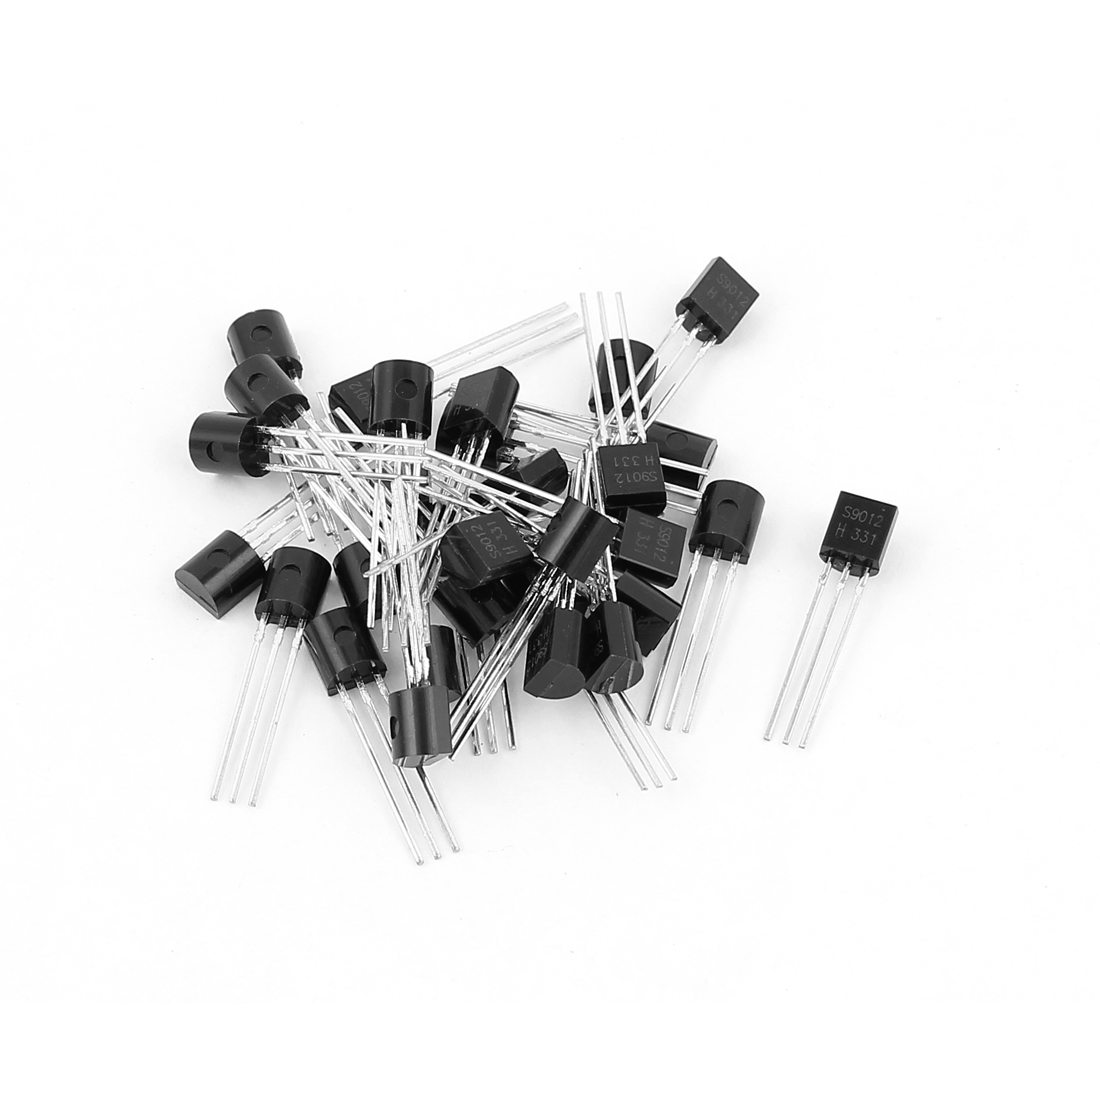 30 Pcs S9012 PNP Bipolar Low Power Junction Transistors 40V 0.5A TO-92